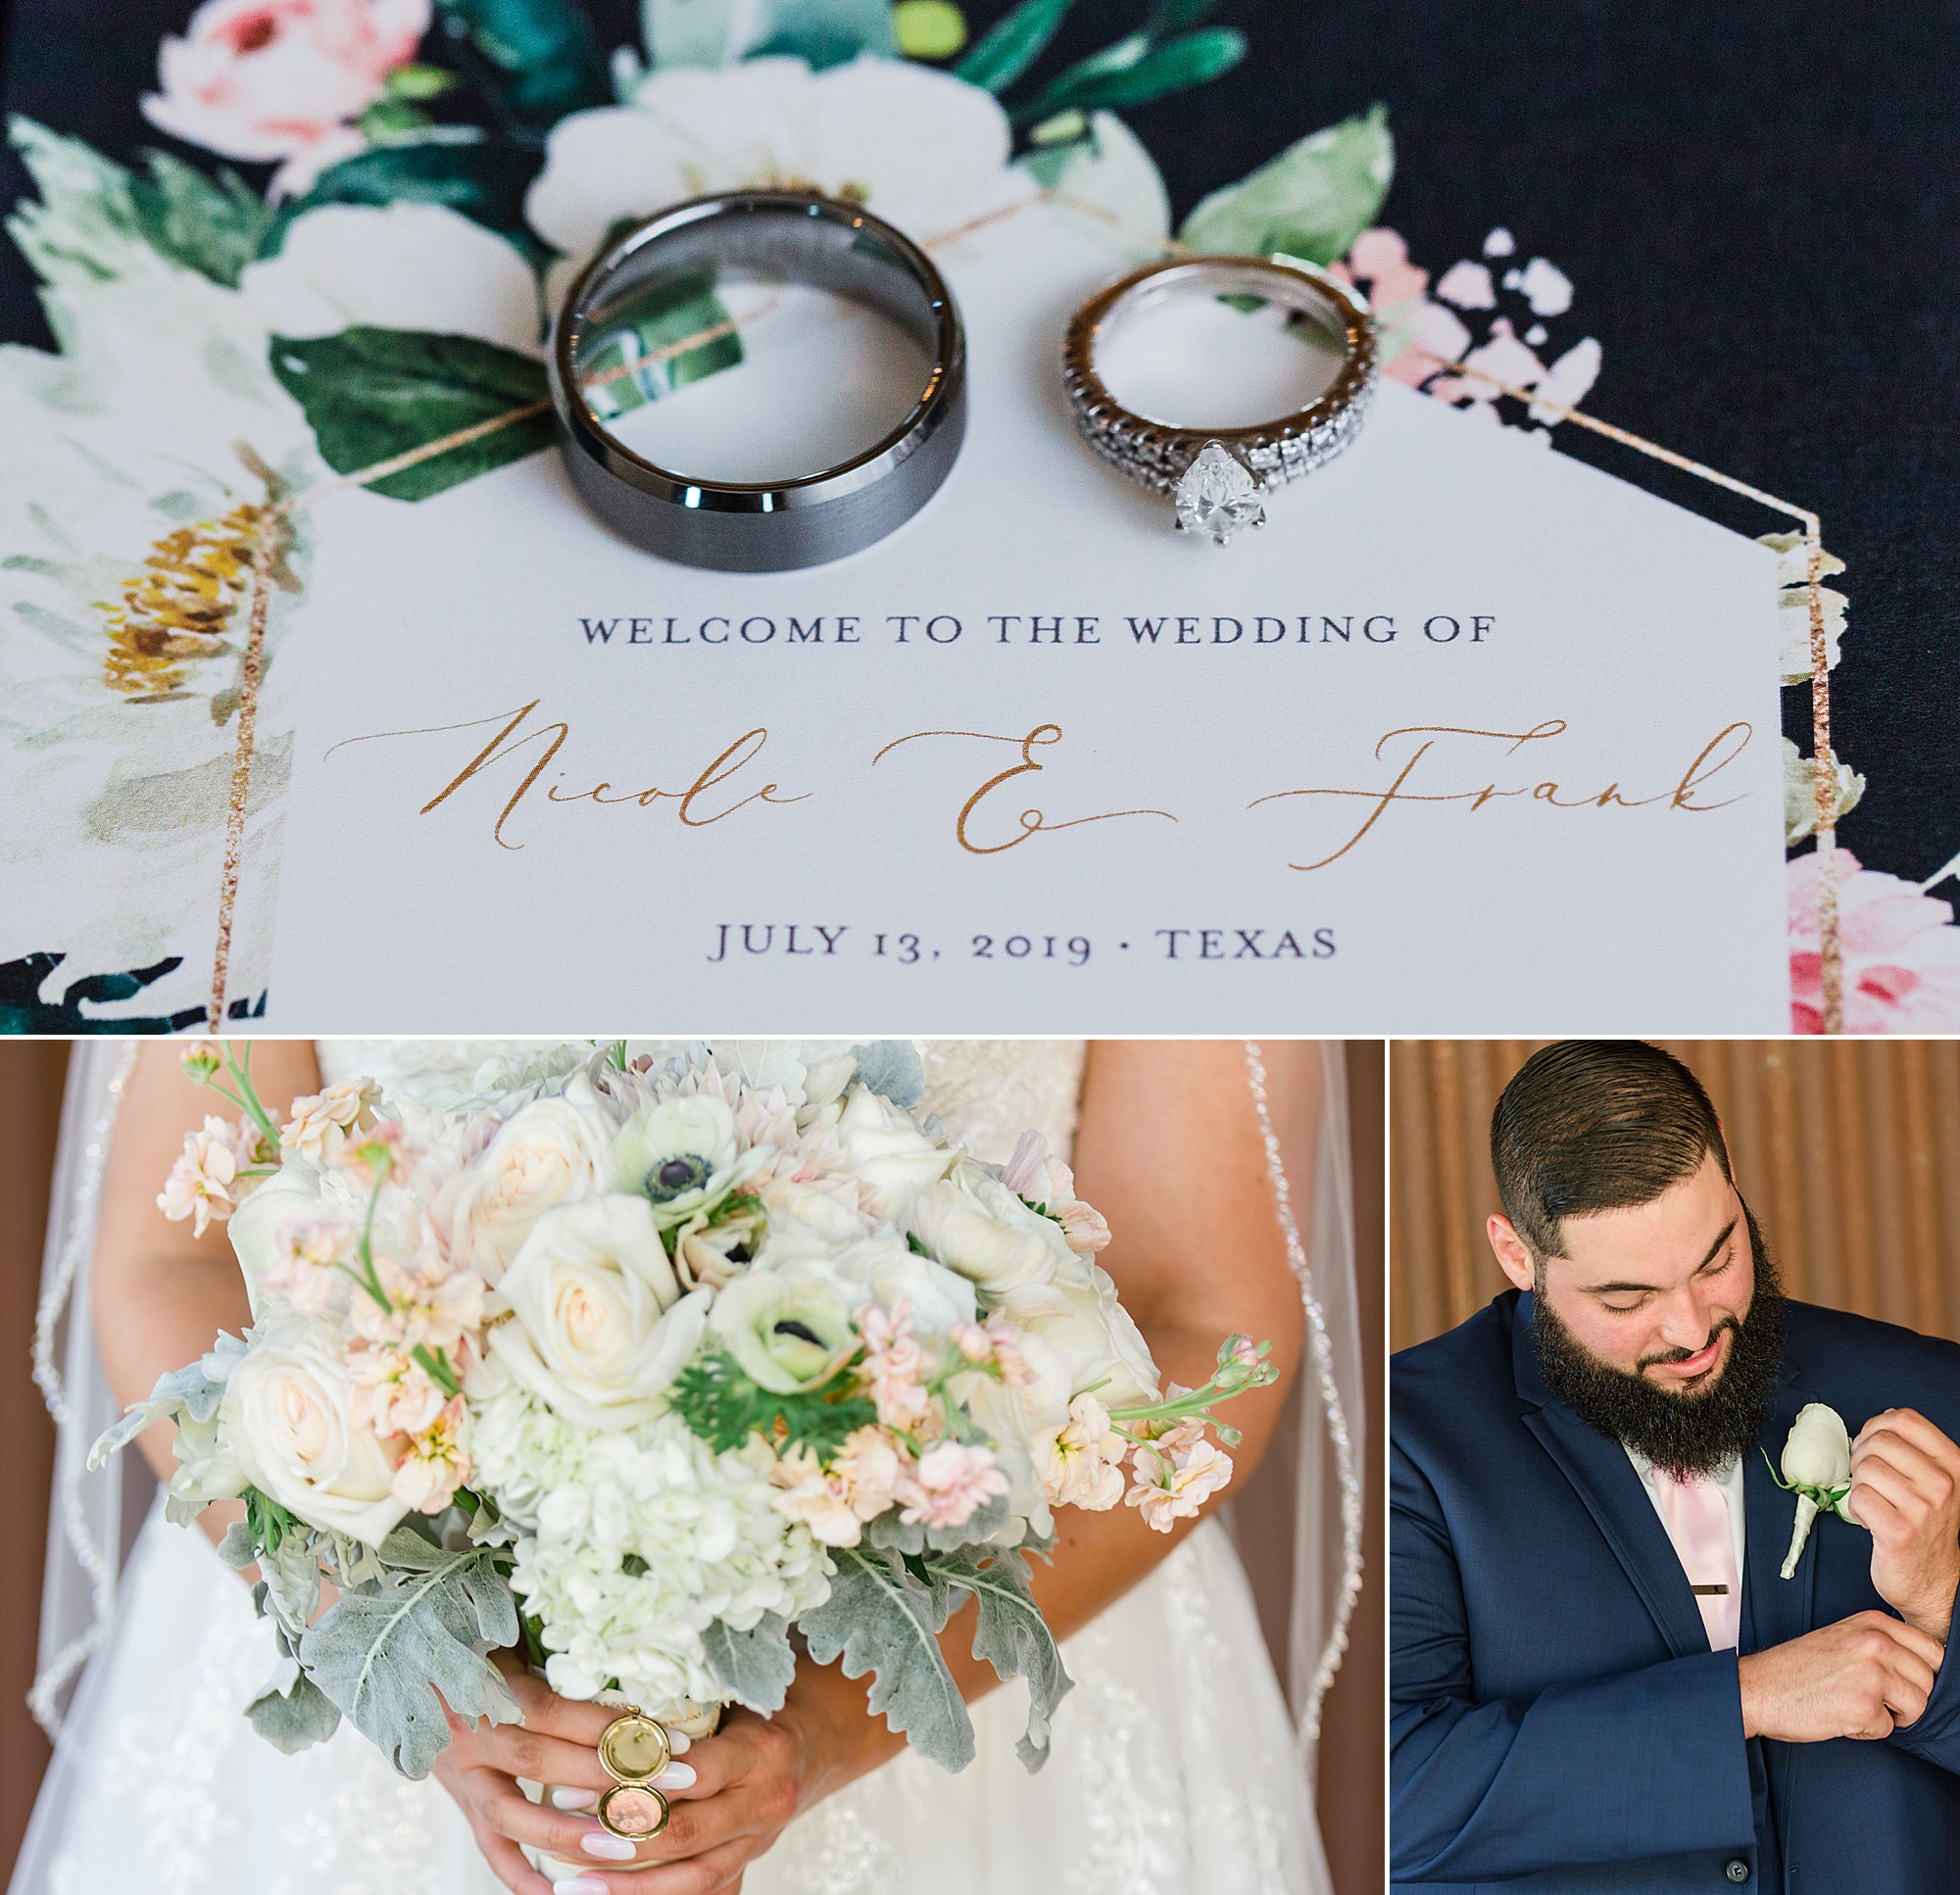 Wedding-Photographer-Bulverde-Texas-Western-Sky-Event-Venue-Carly-Barton-Photography_0002.jpg